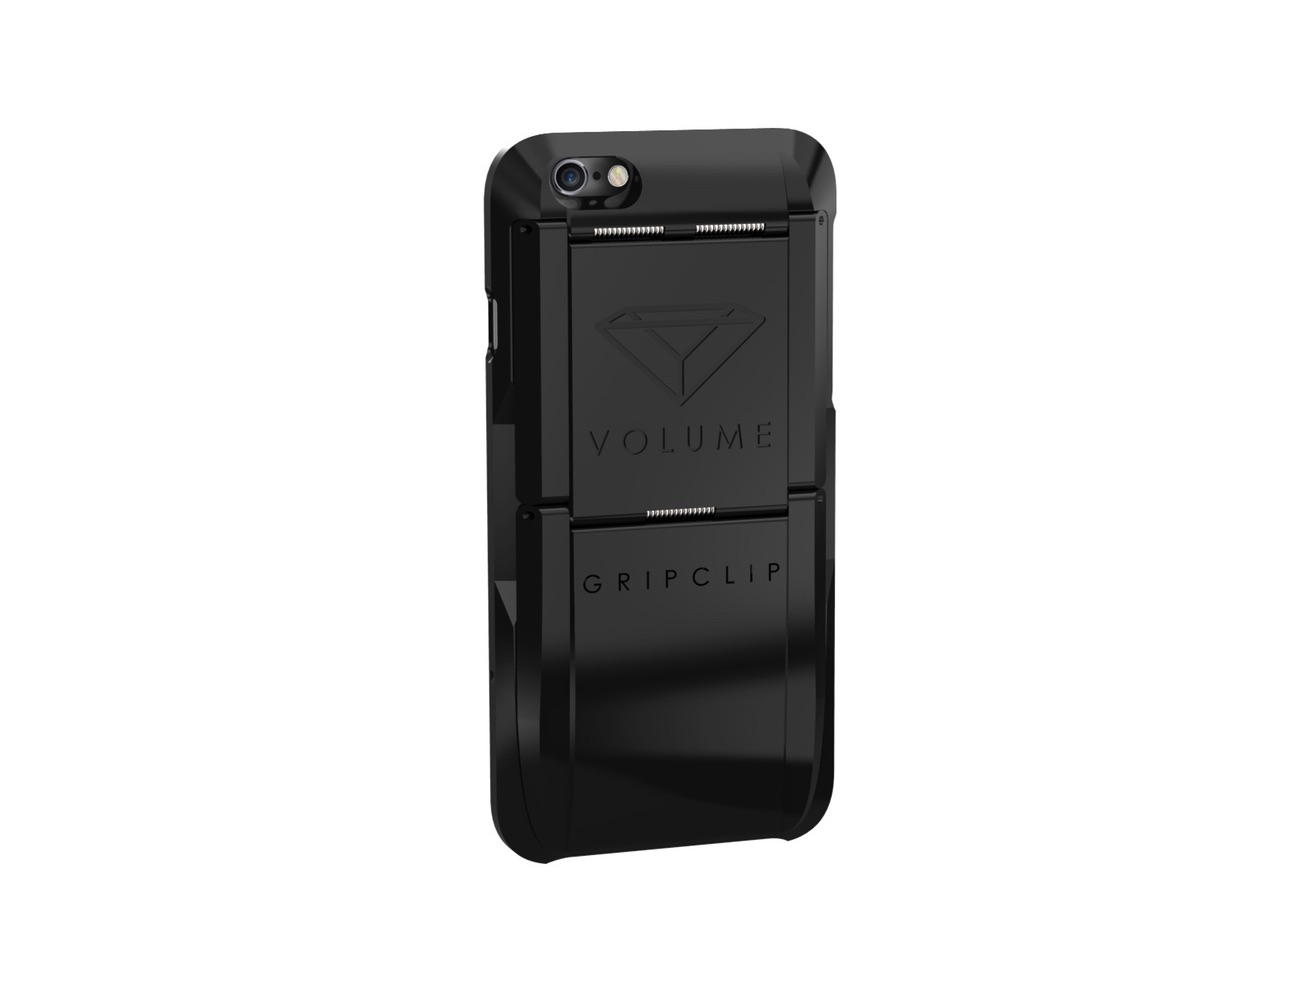 grip-clip-the-worlds-most-useful-iphone-case-03